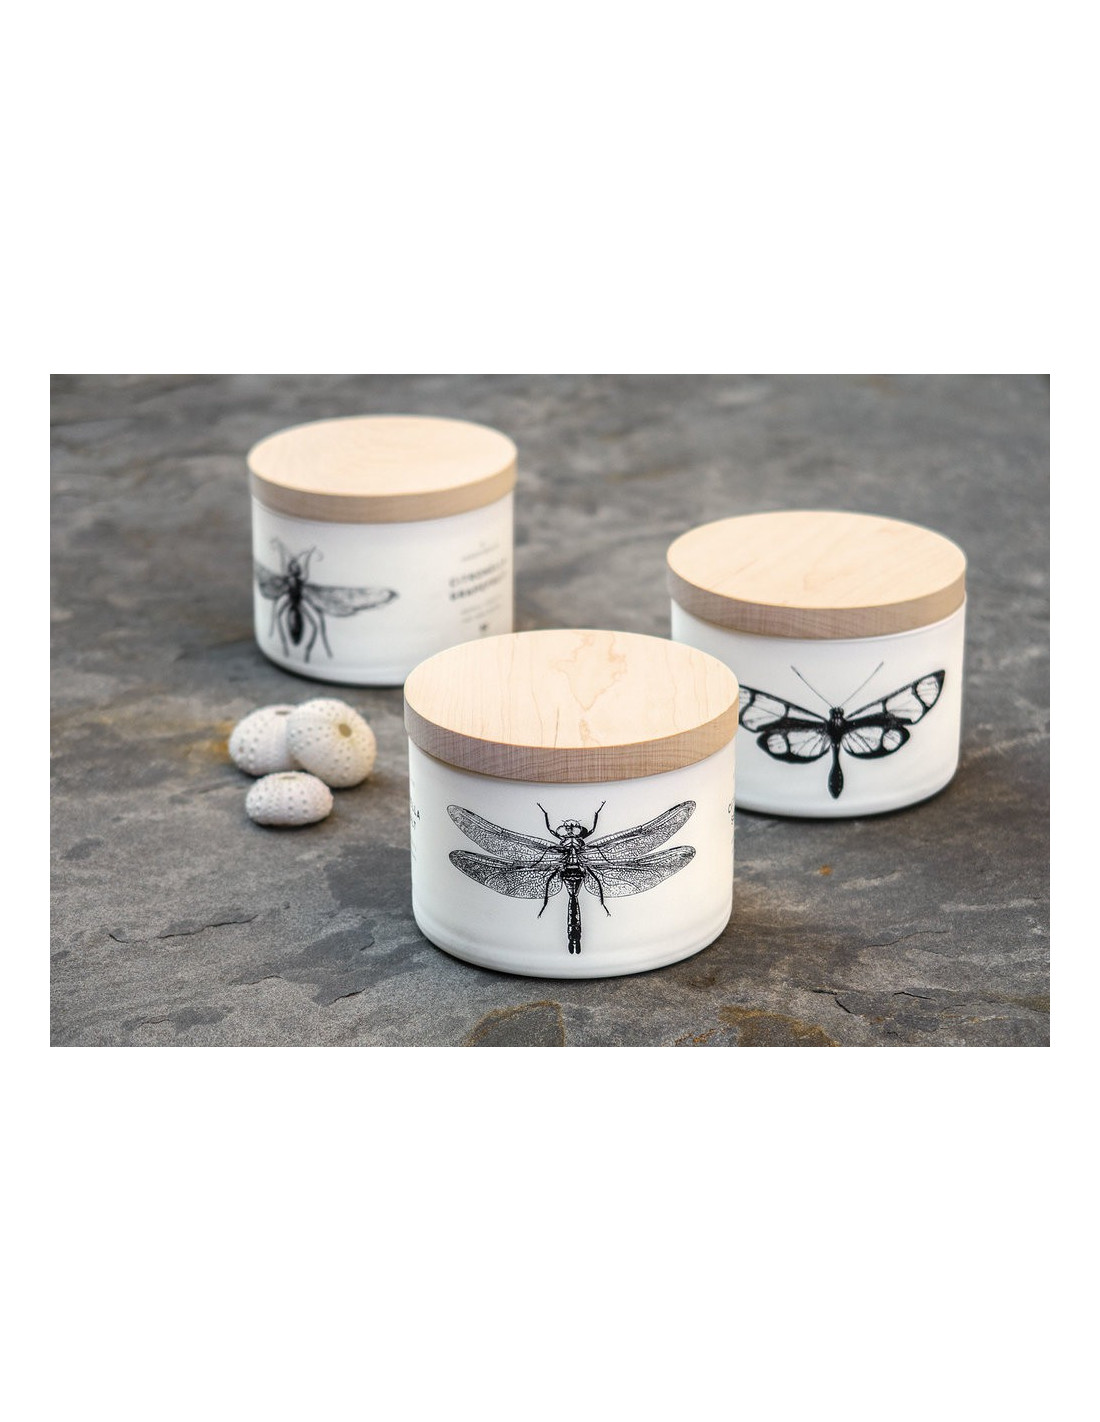 Bougie Citronnelle Exterieur Skeem Candles Bougie 3 Mèches Citronella Grapefruit